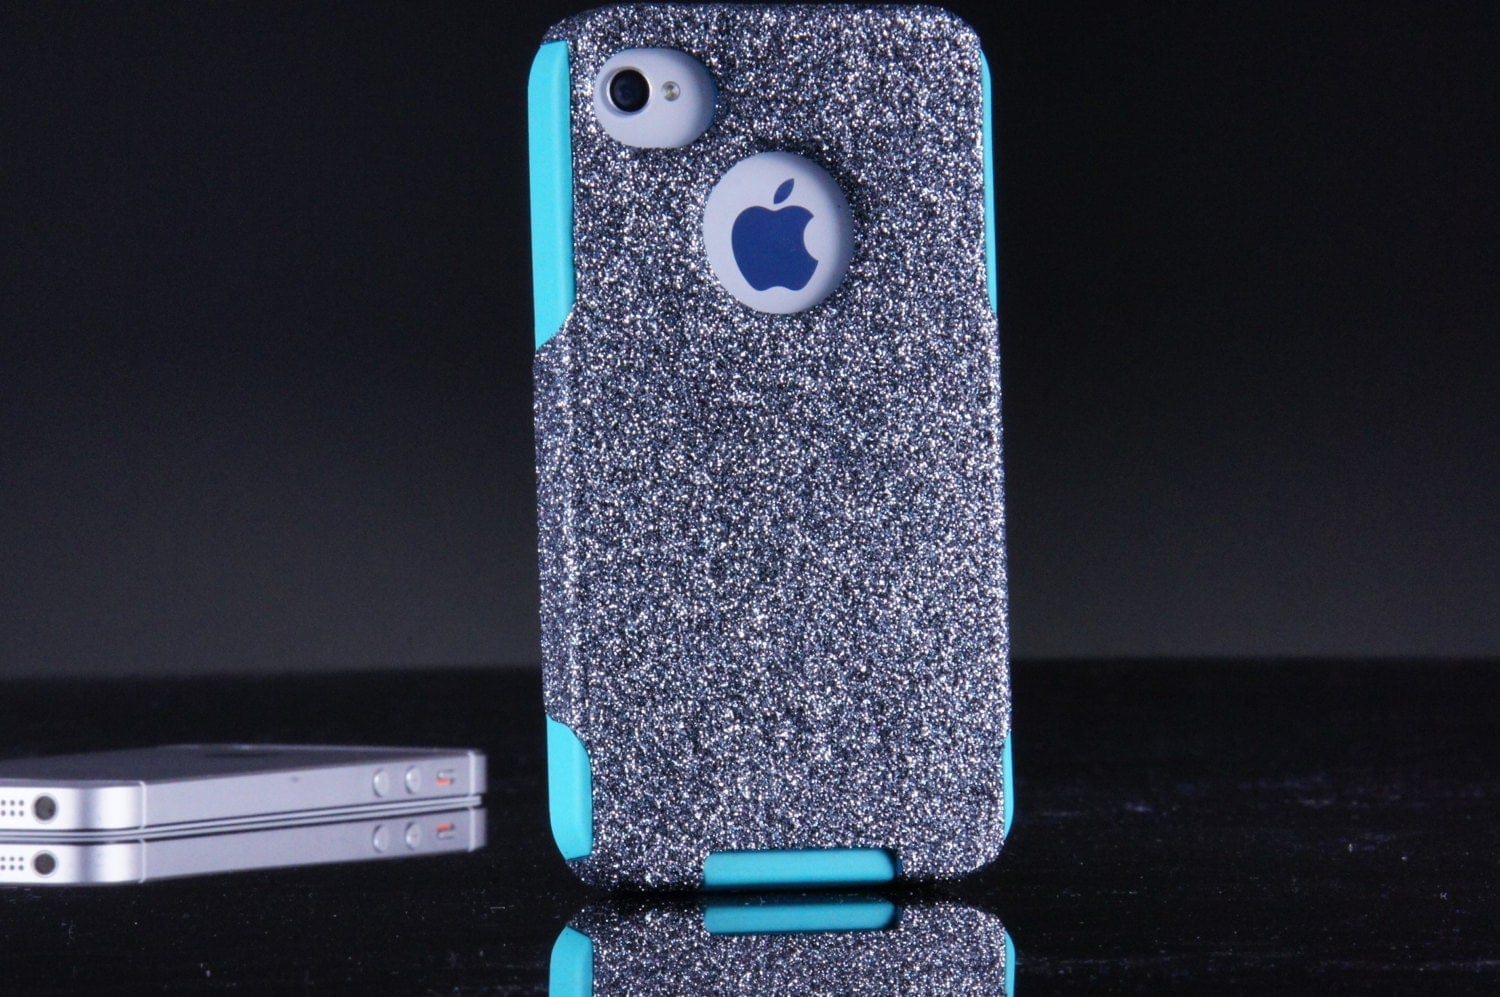 iphone 4 s cases otterbox custom iphone 4 glitter iphone 4s iphone 8607